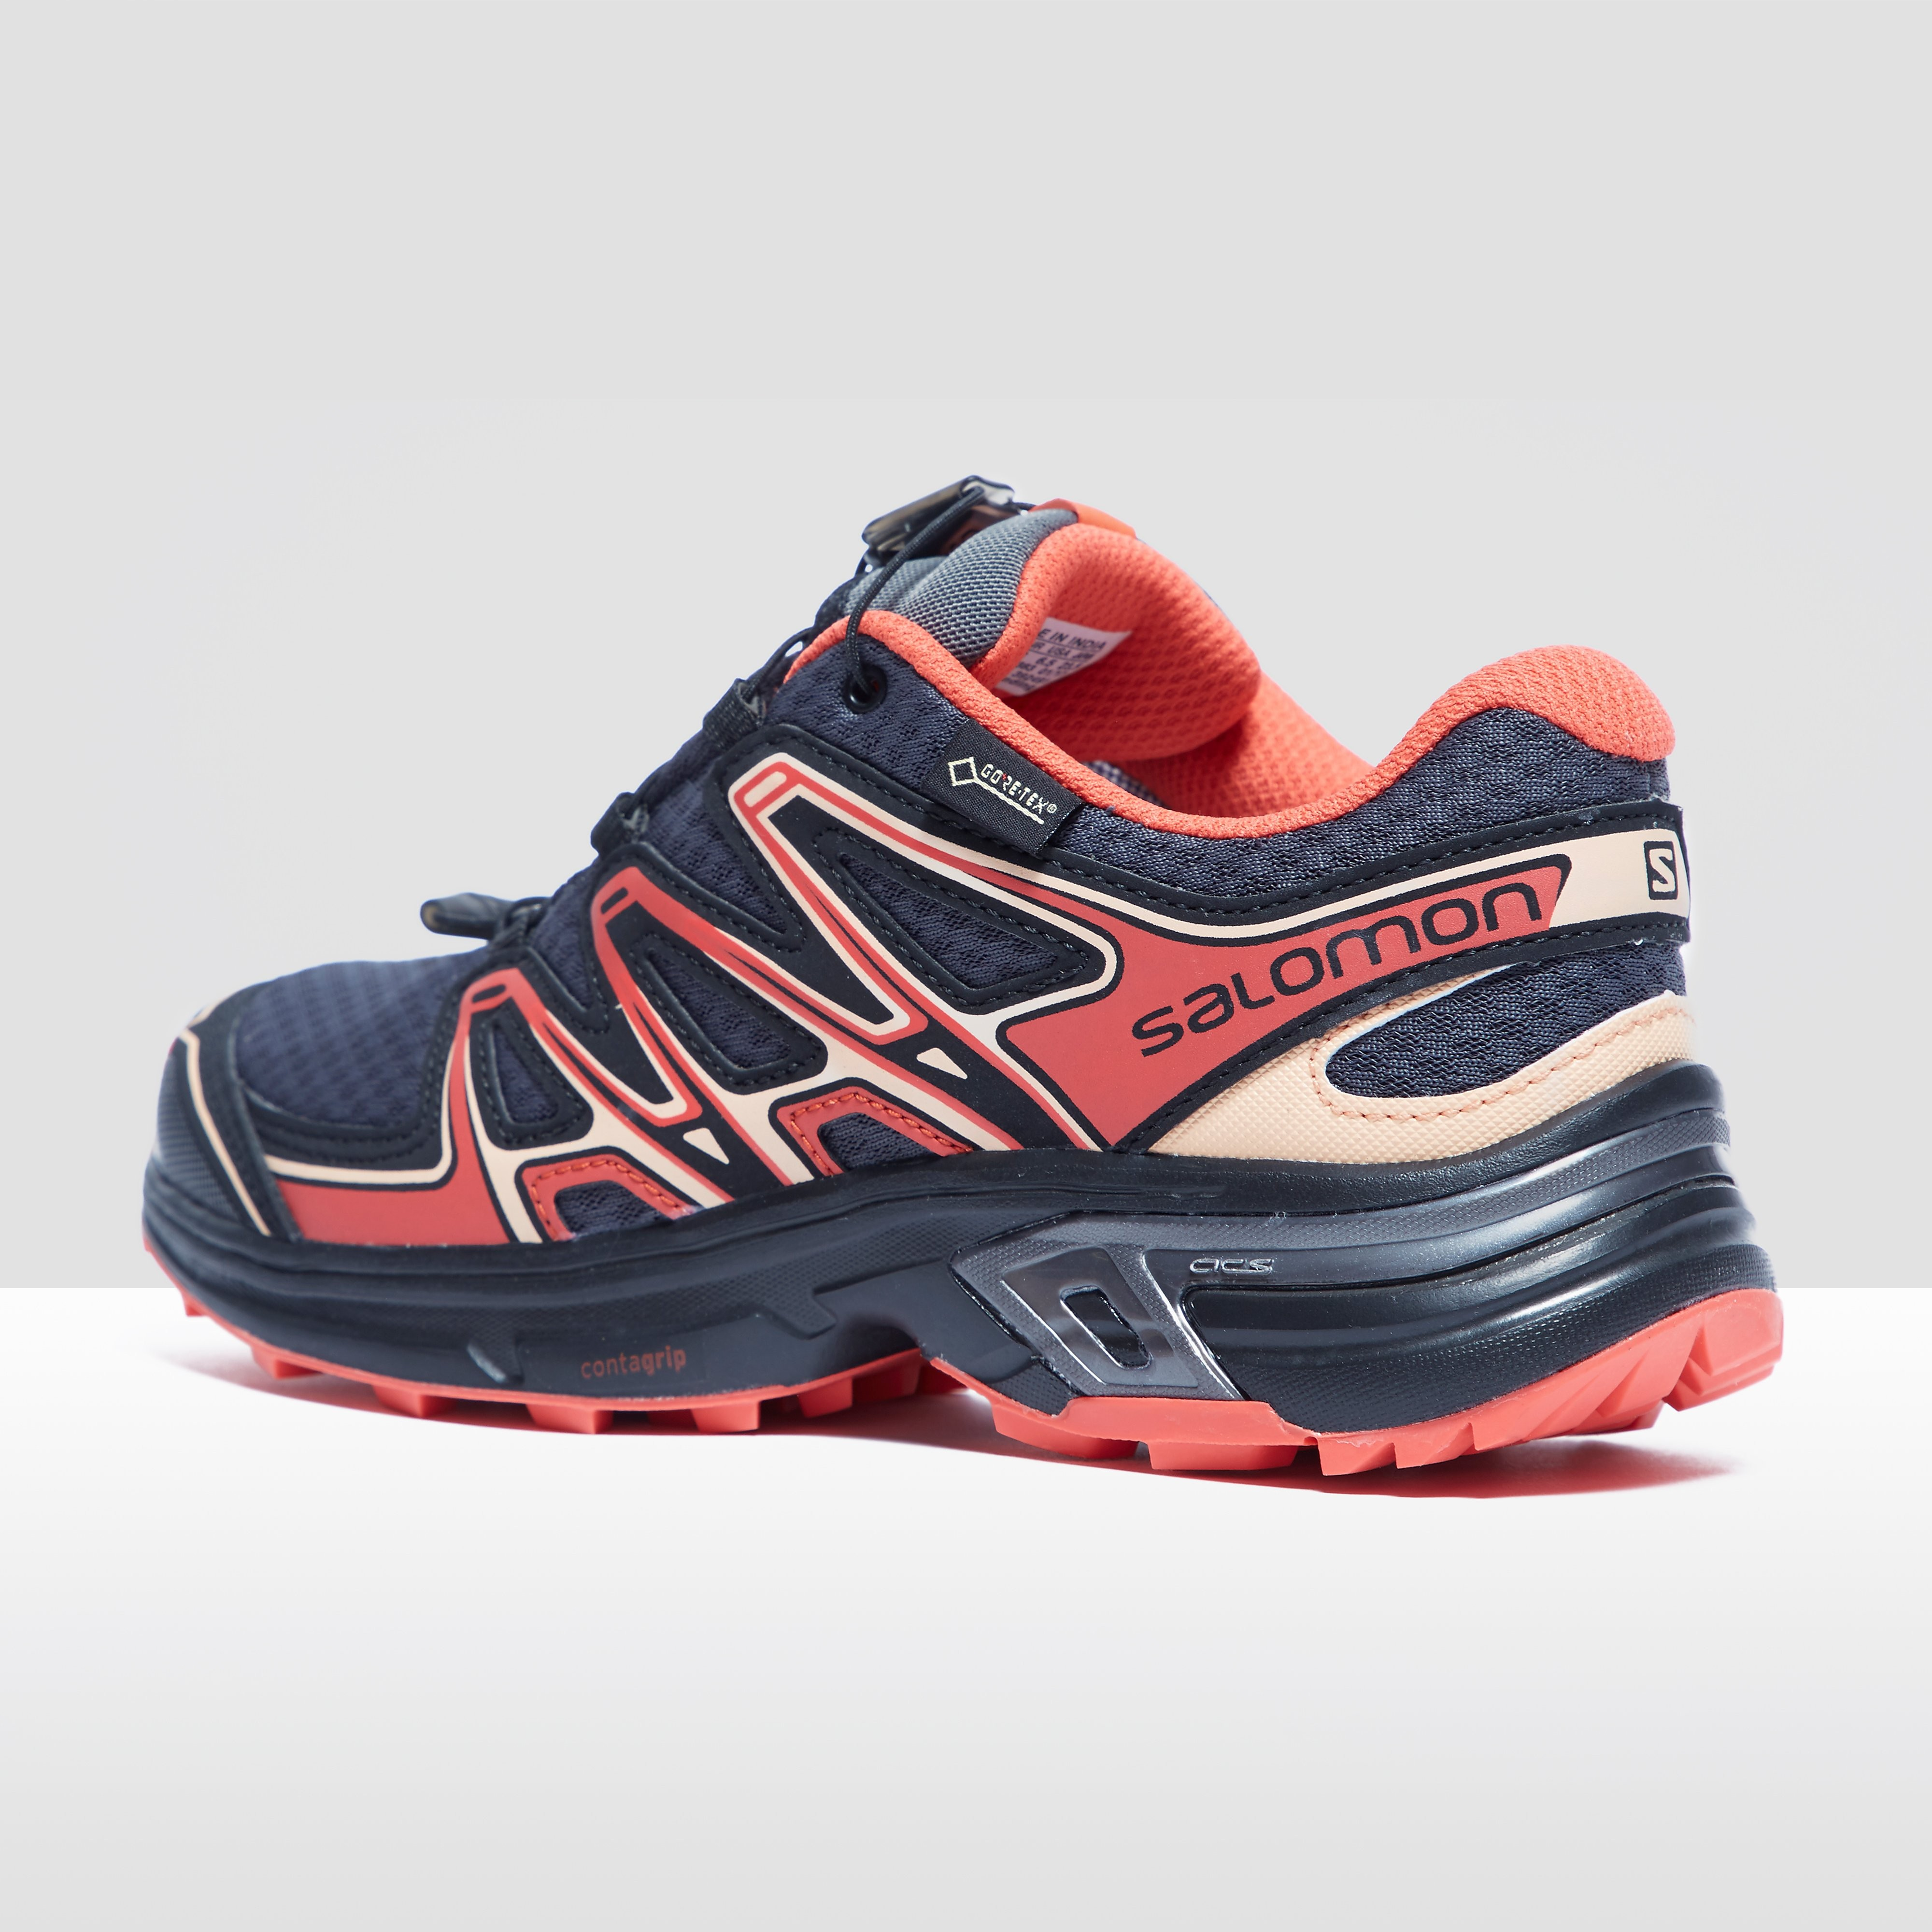 Salomon WINGS FLYTE 2 GTX Women's Running Shoes